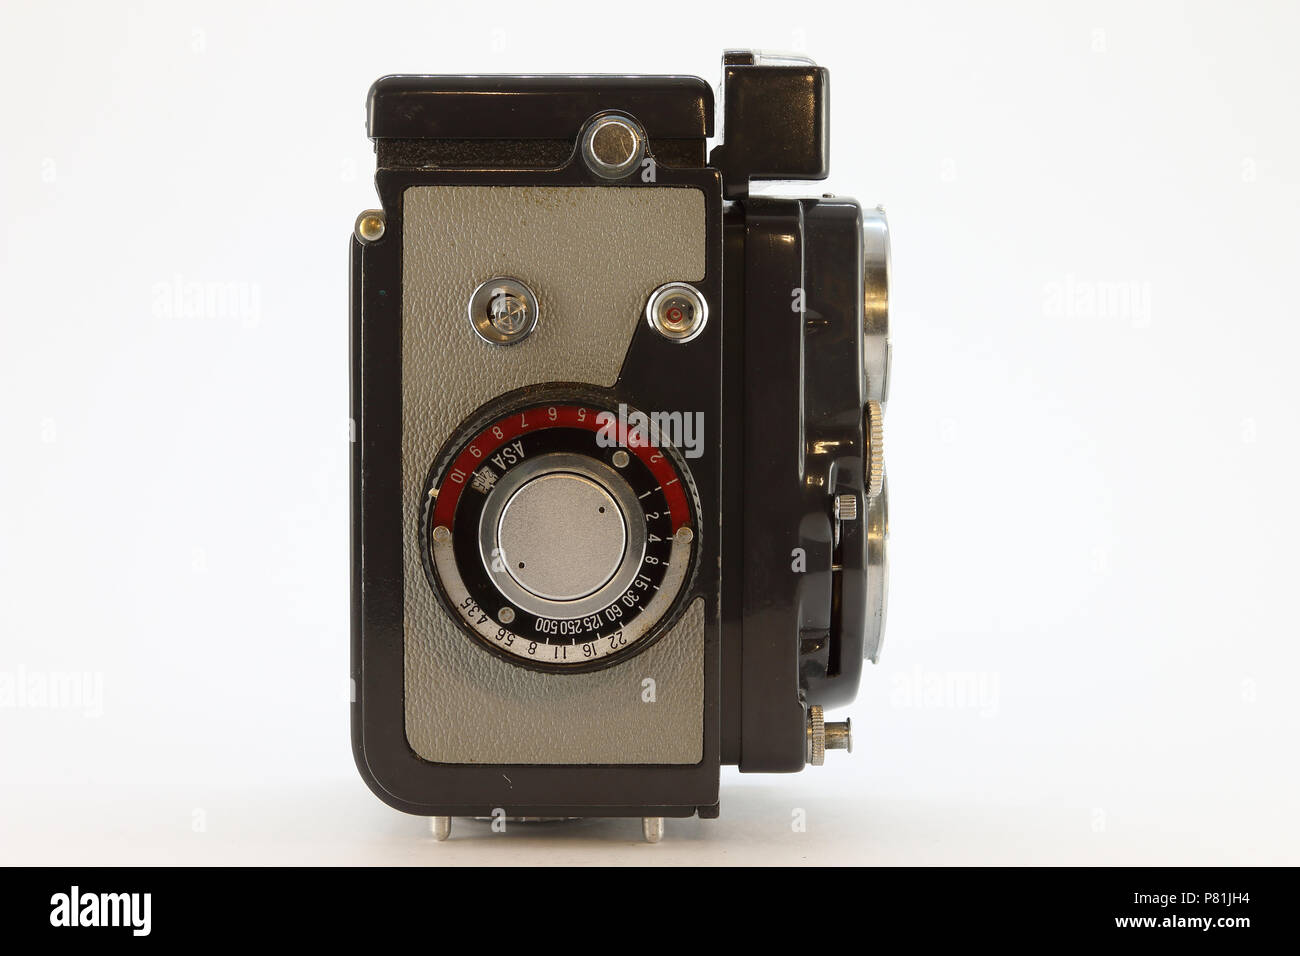 Yashica-44LM from the 1950's side view - Stock Image